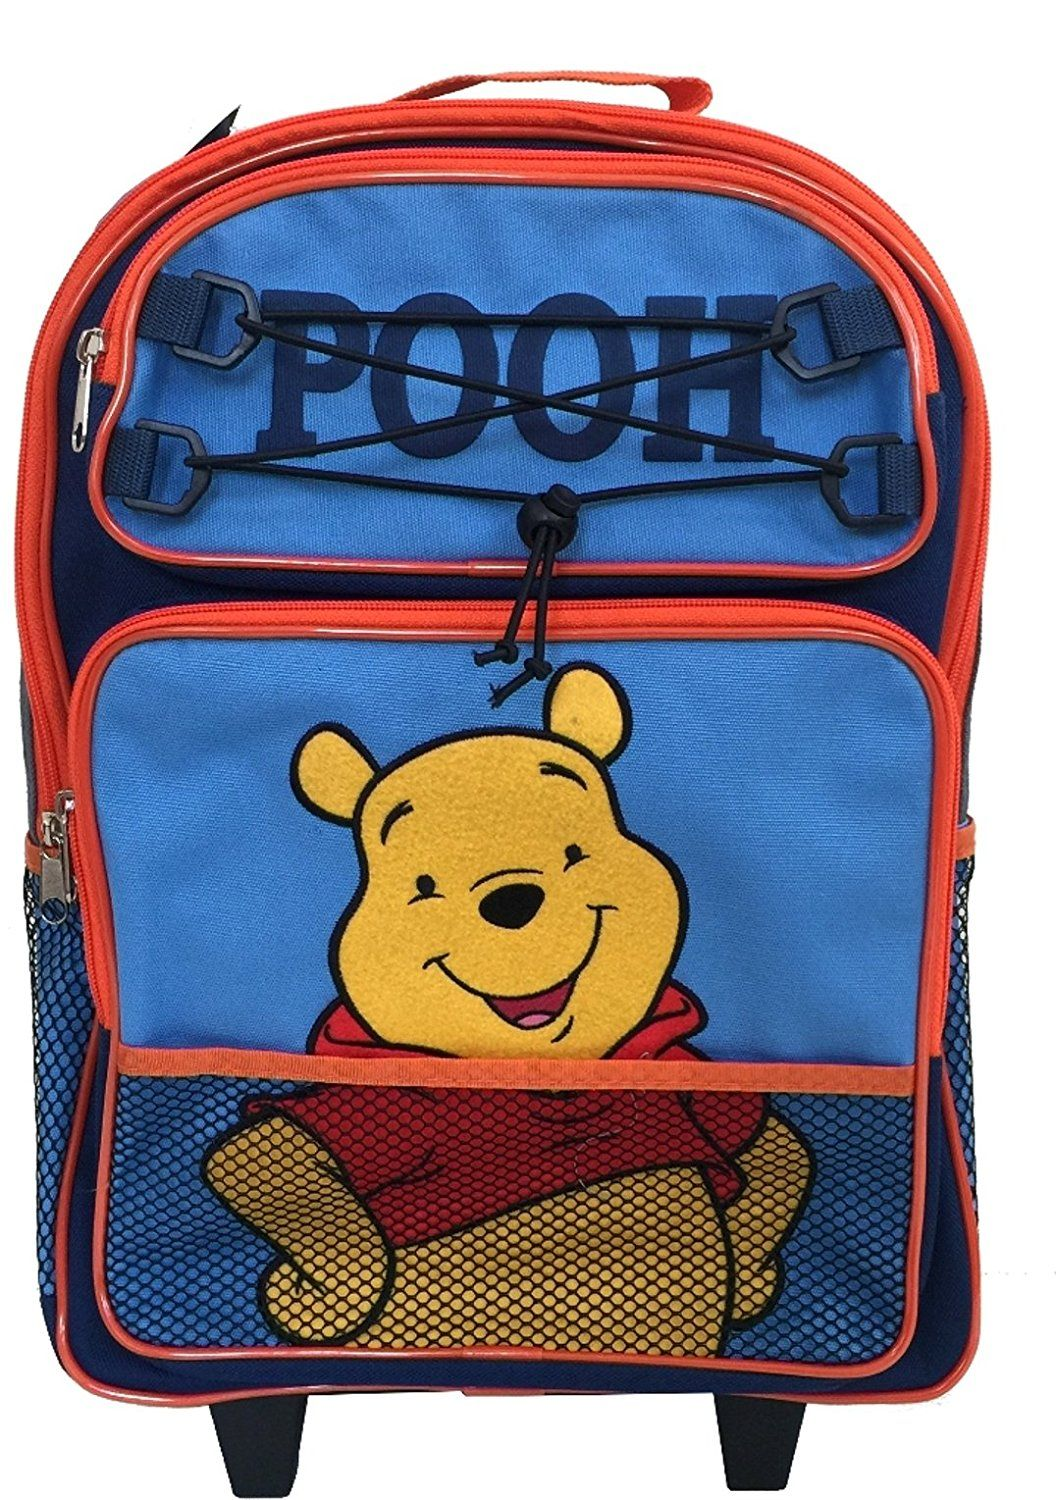 Winnie the Pooh Trolley Holdall Weekender Bag - Girls Pooh Bear Hand Luggage  Travel Handbag M955 ... 735cb8850